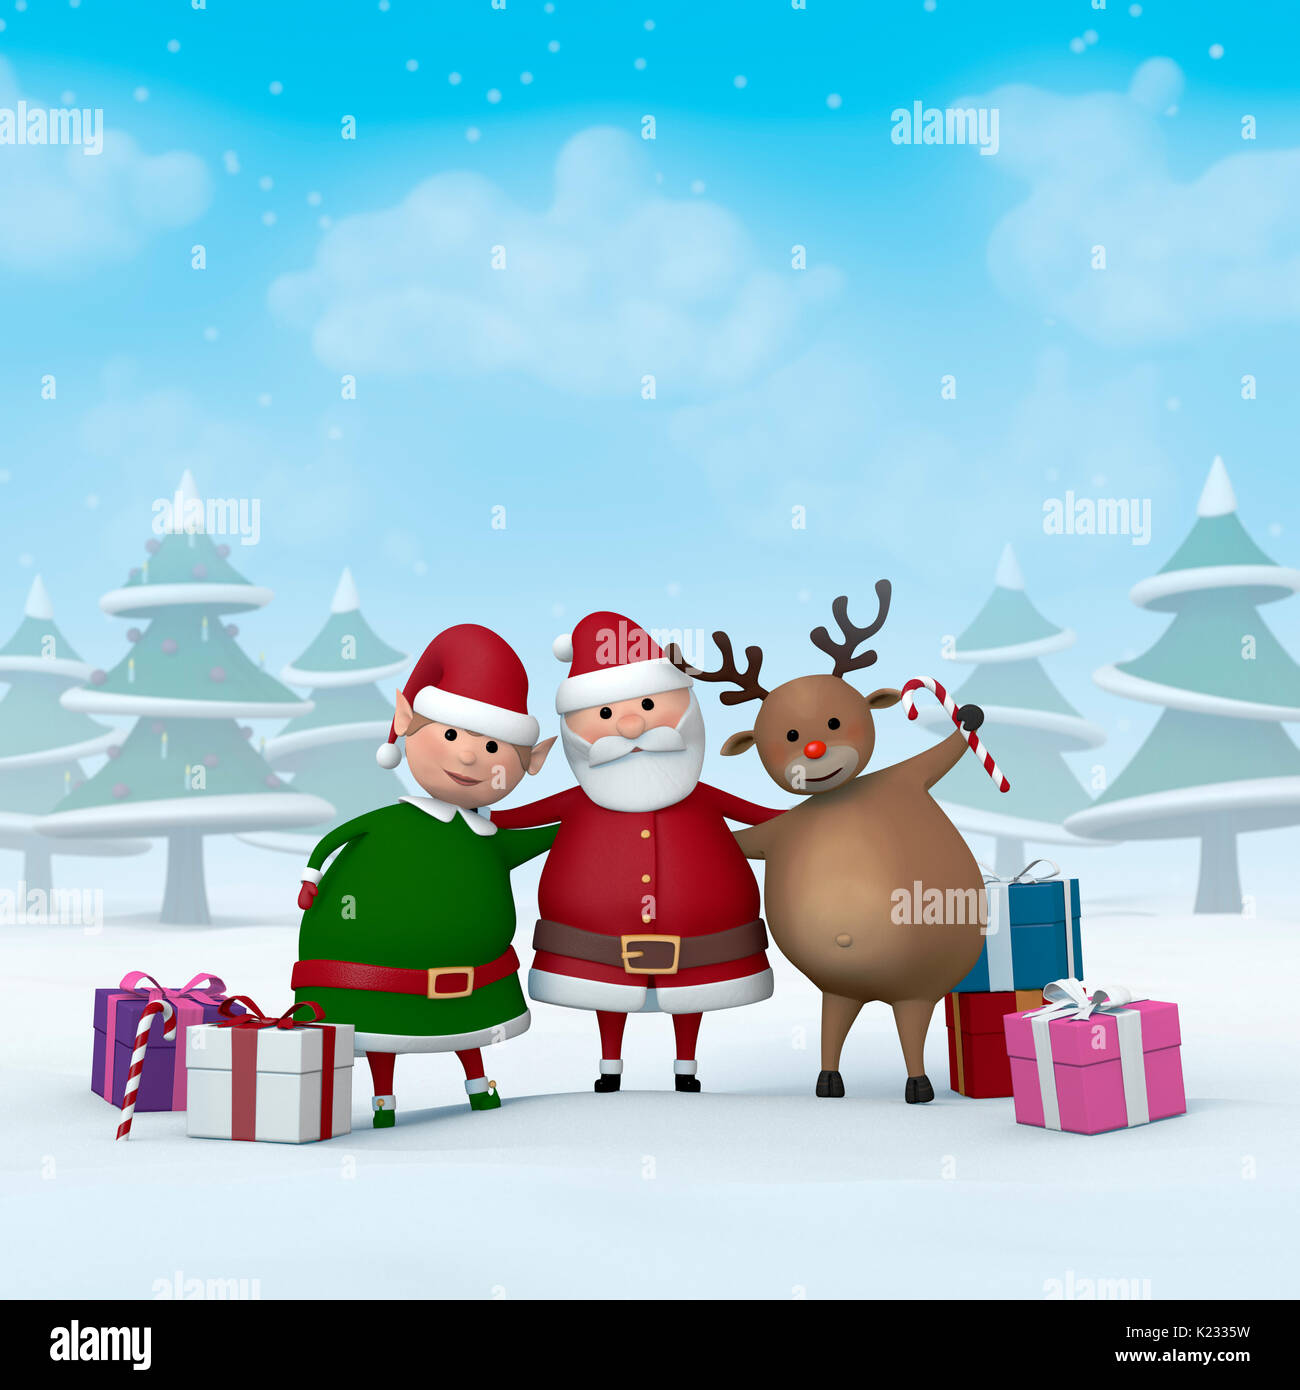 Rudolph Square Stock Photos & Rudolph Square Stock Images - Alamy